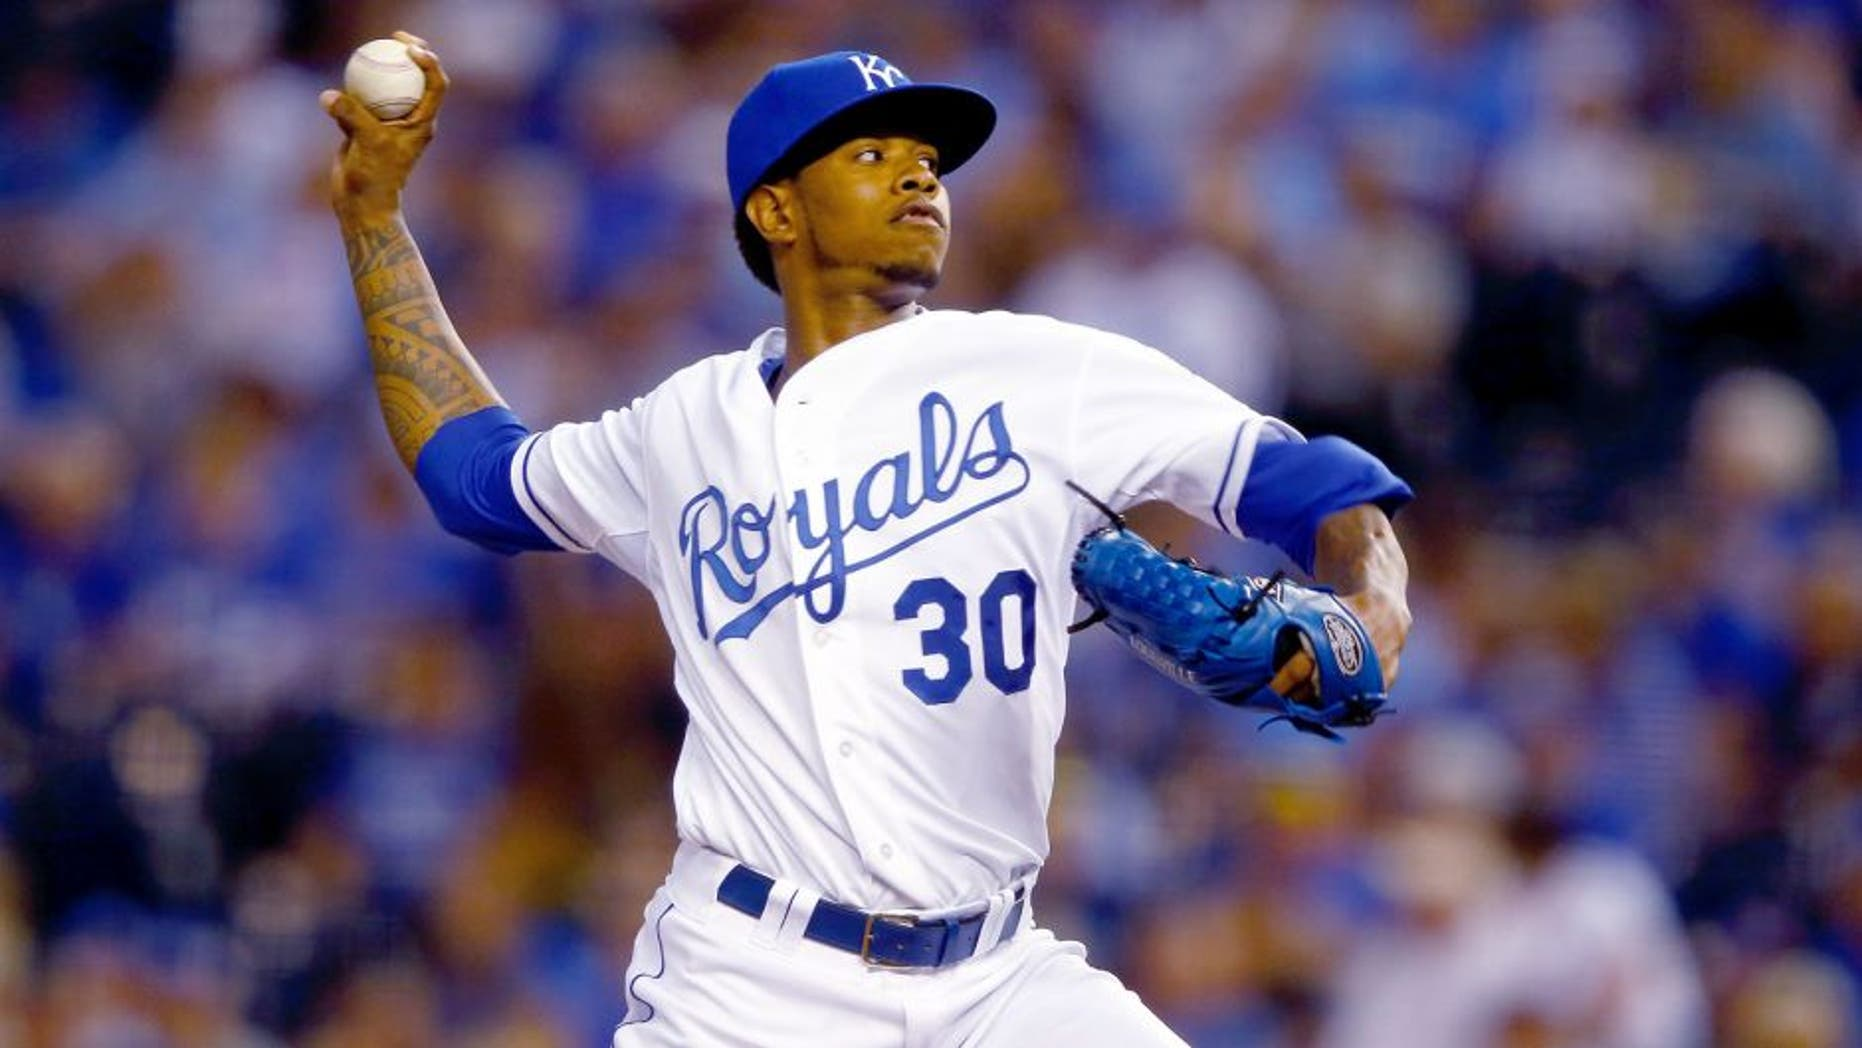 KANSAS CITY, MO - SEPTEMBER 23: Starting pitcher Yordano Ventura #30 of the Kansas City Royals pitches during the 1st inning of the game against the Seattle Mariners at Kauffman Stadium on September 23, 2015 in Kansas City, Missouri. (Photo by Jamie Squire/Getty Images)